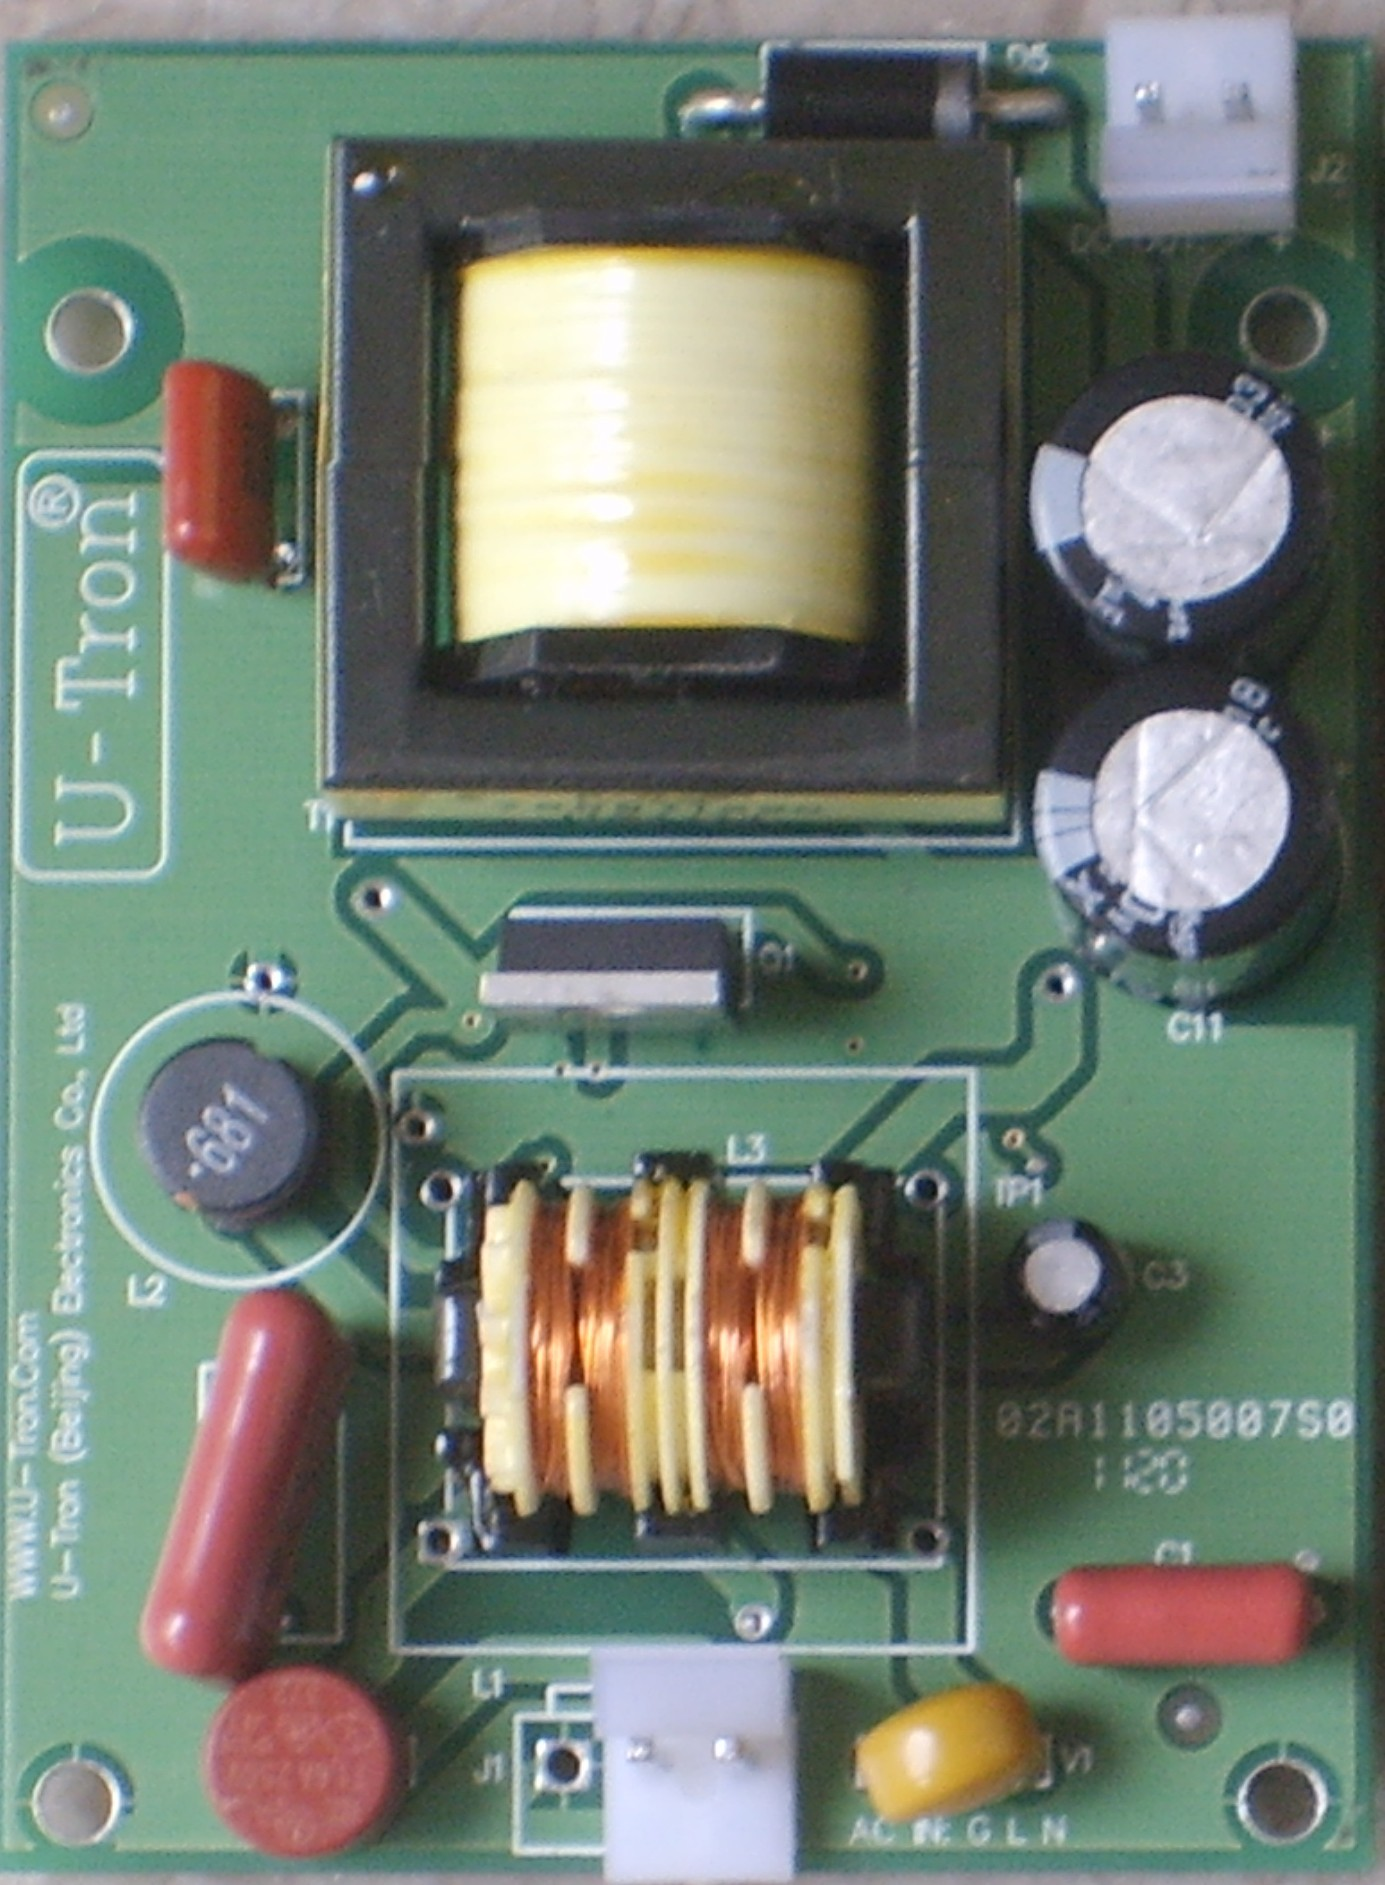 50 Watt Dimming Driver For Led Ac Capacitor Circuit U Tron Always Made Its Own Boards And But Sometimes Outsourced The Dc Power Supplies However Available In Market Have